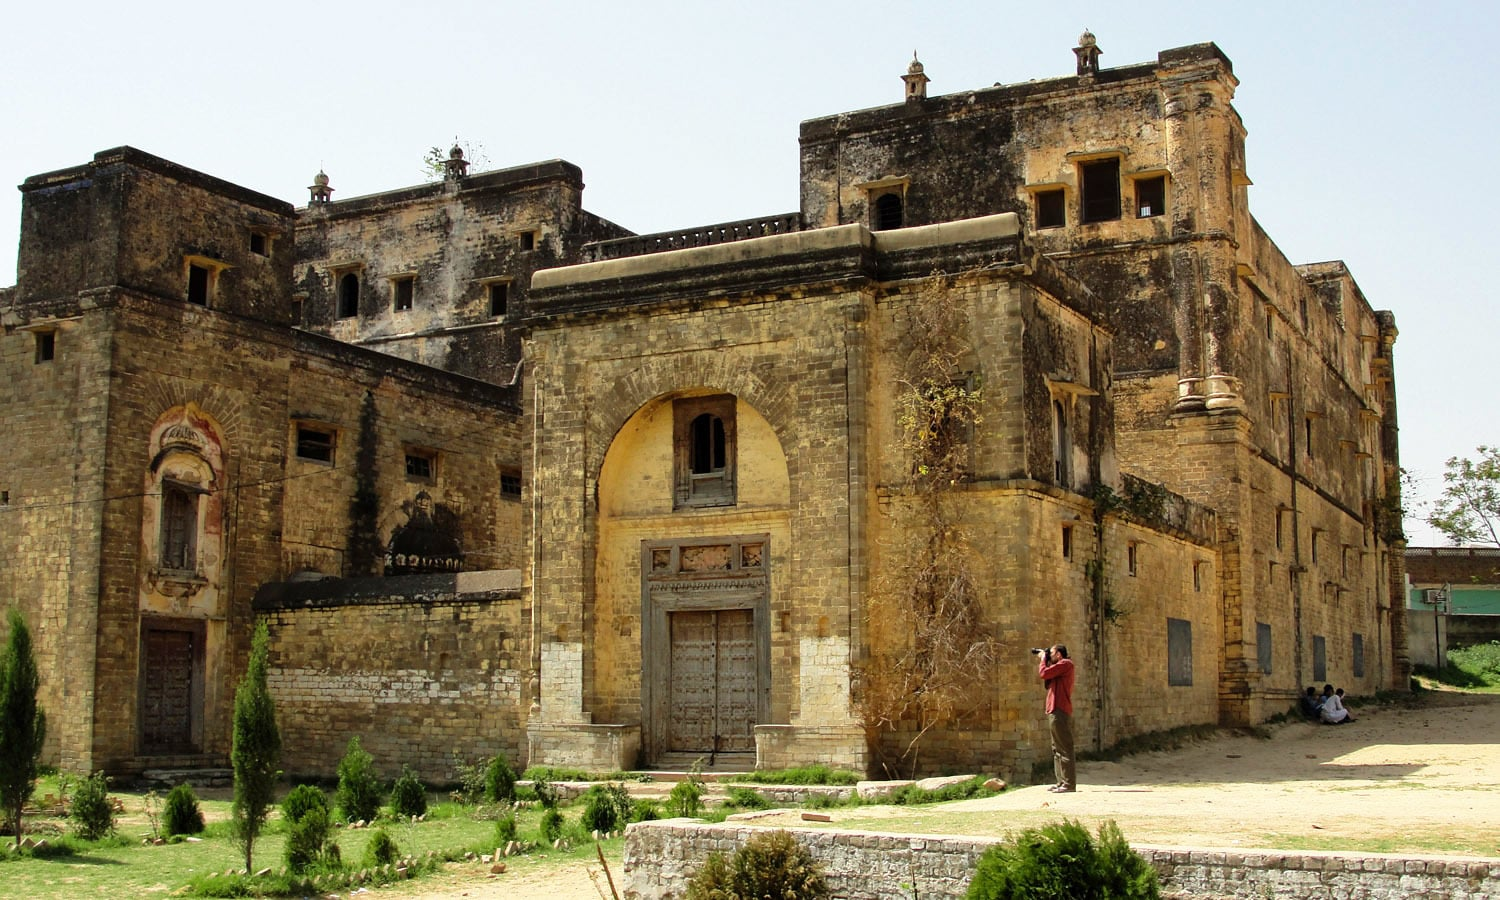 View of Khem Singh Bedi Haveli at Kallar Syedan.